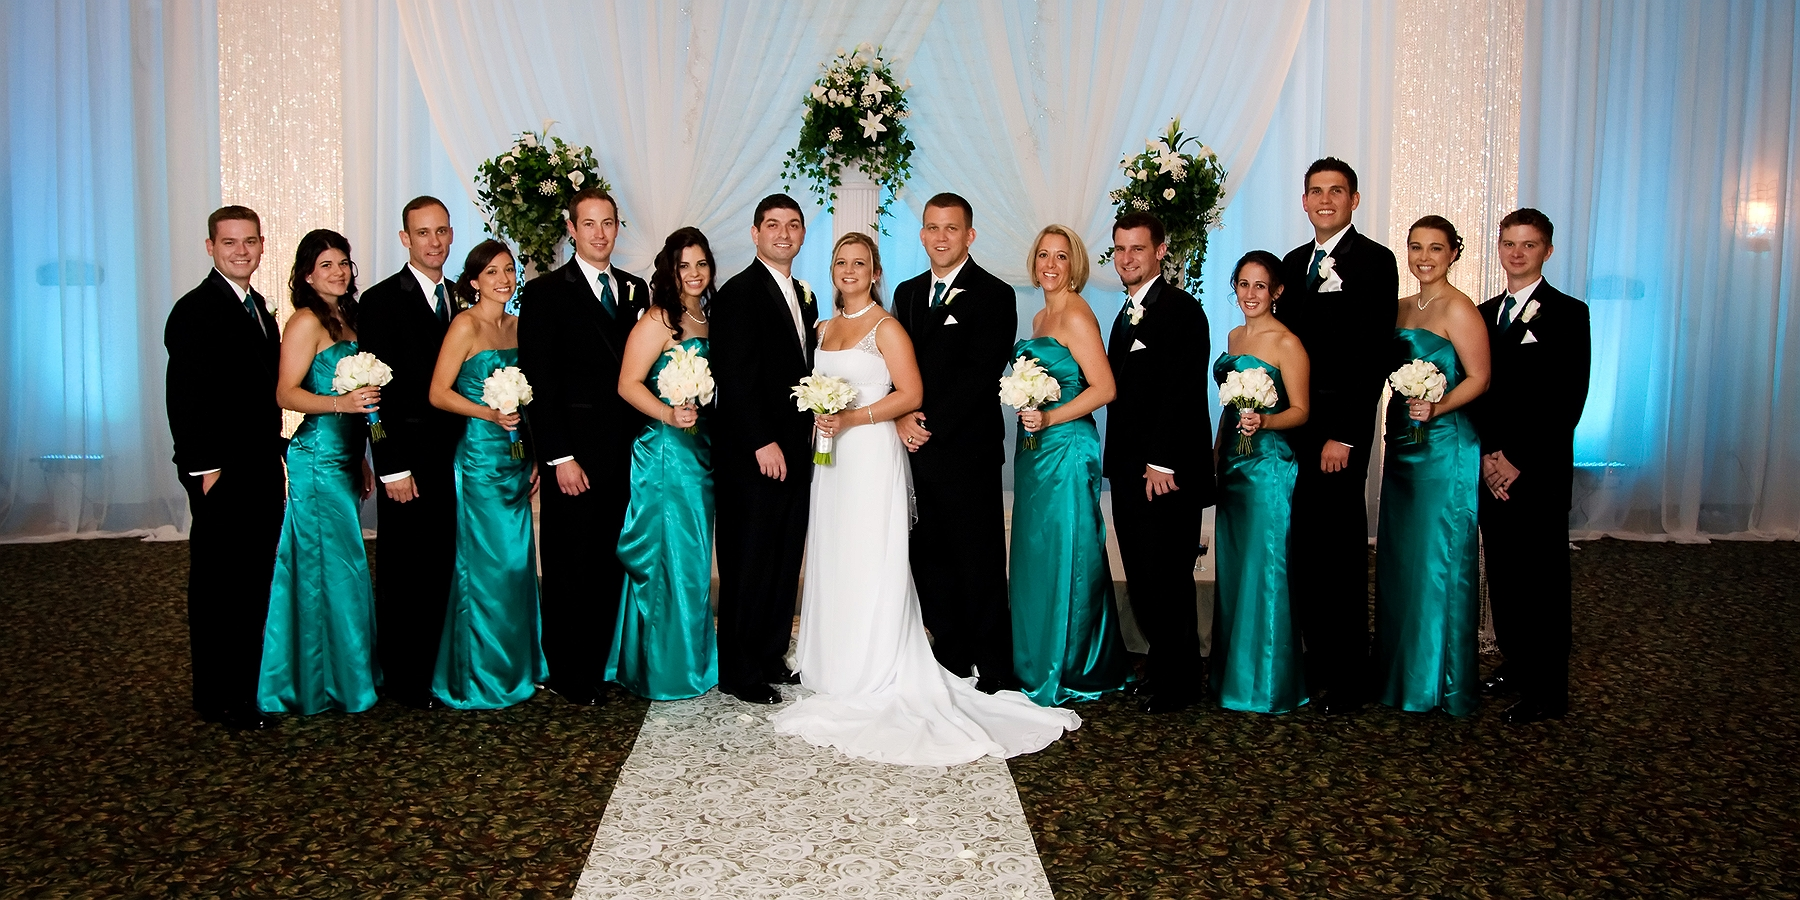 group formal tampa wedding photography | Photocrati: www.photocrati.com/wedding-album-design/group-formal-tampa-wedding...